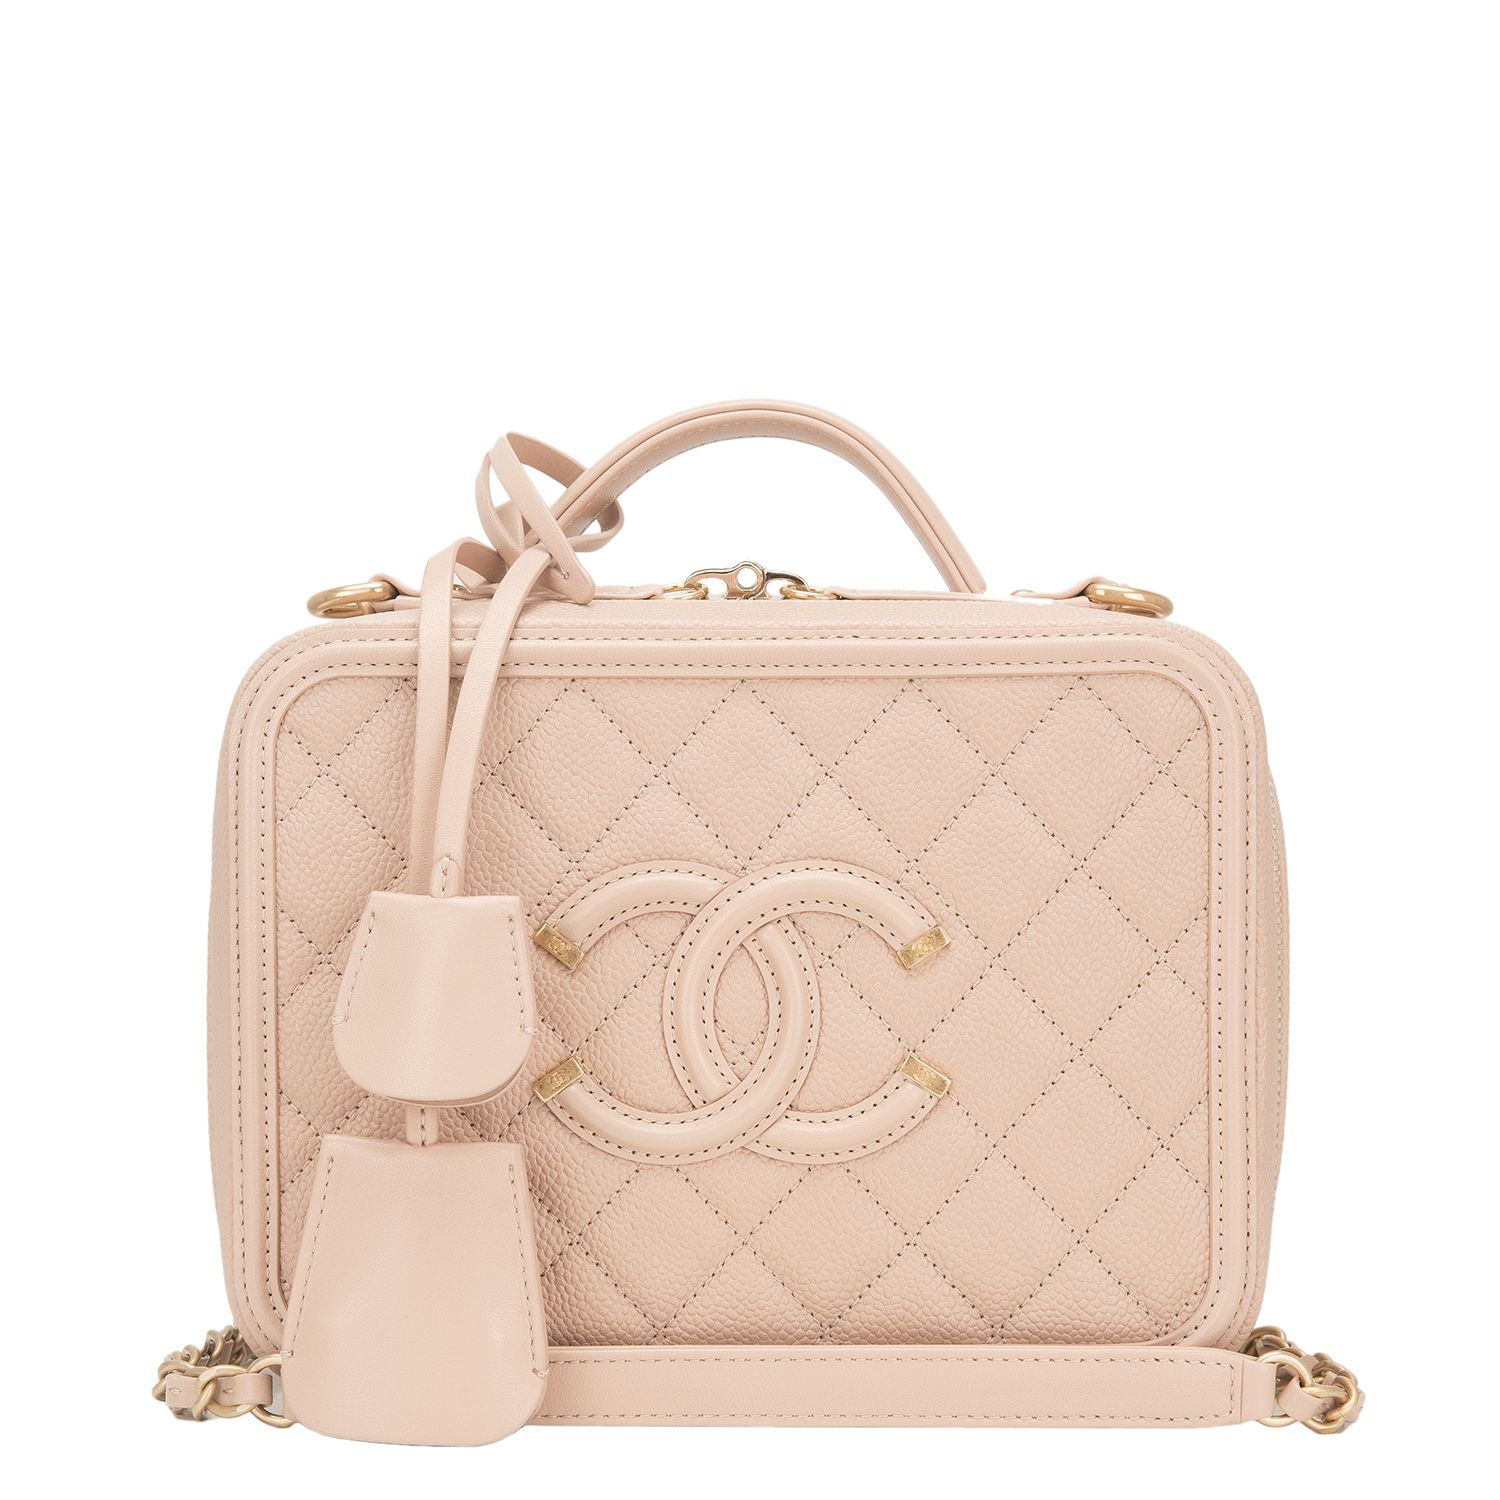 0f4bfe6eca101e Chanel Light Beige Caviar Small Filigree Vanity Case #Bag | Handbags ...